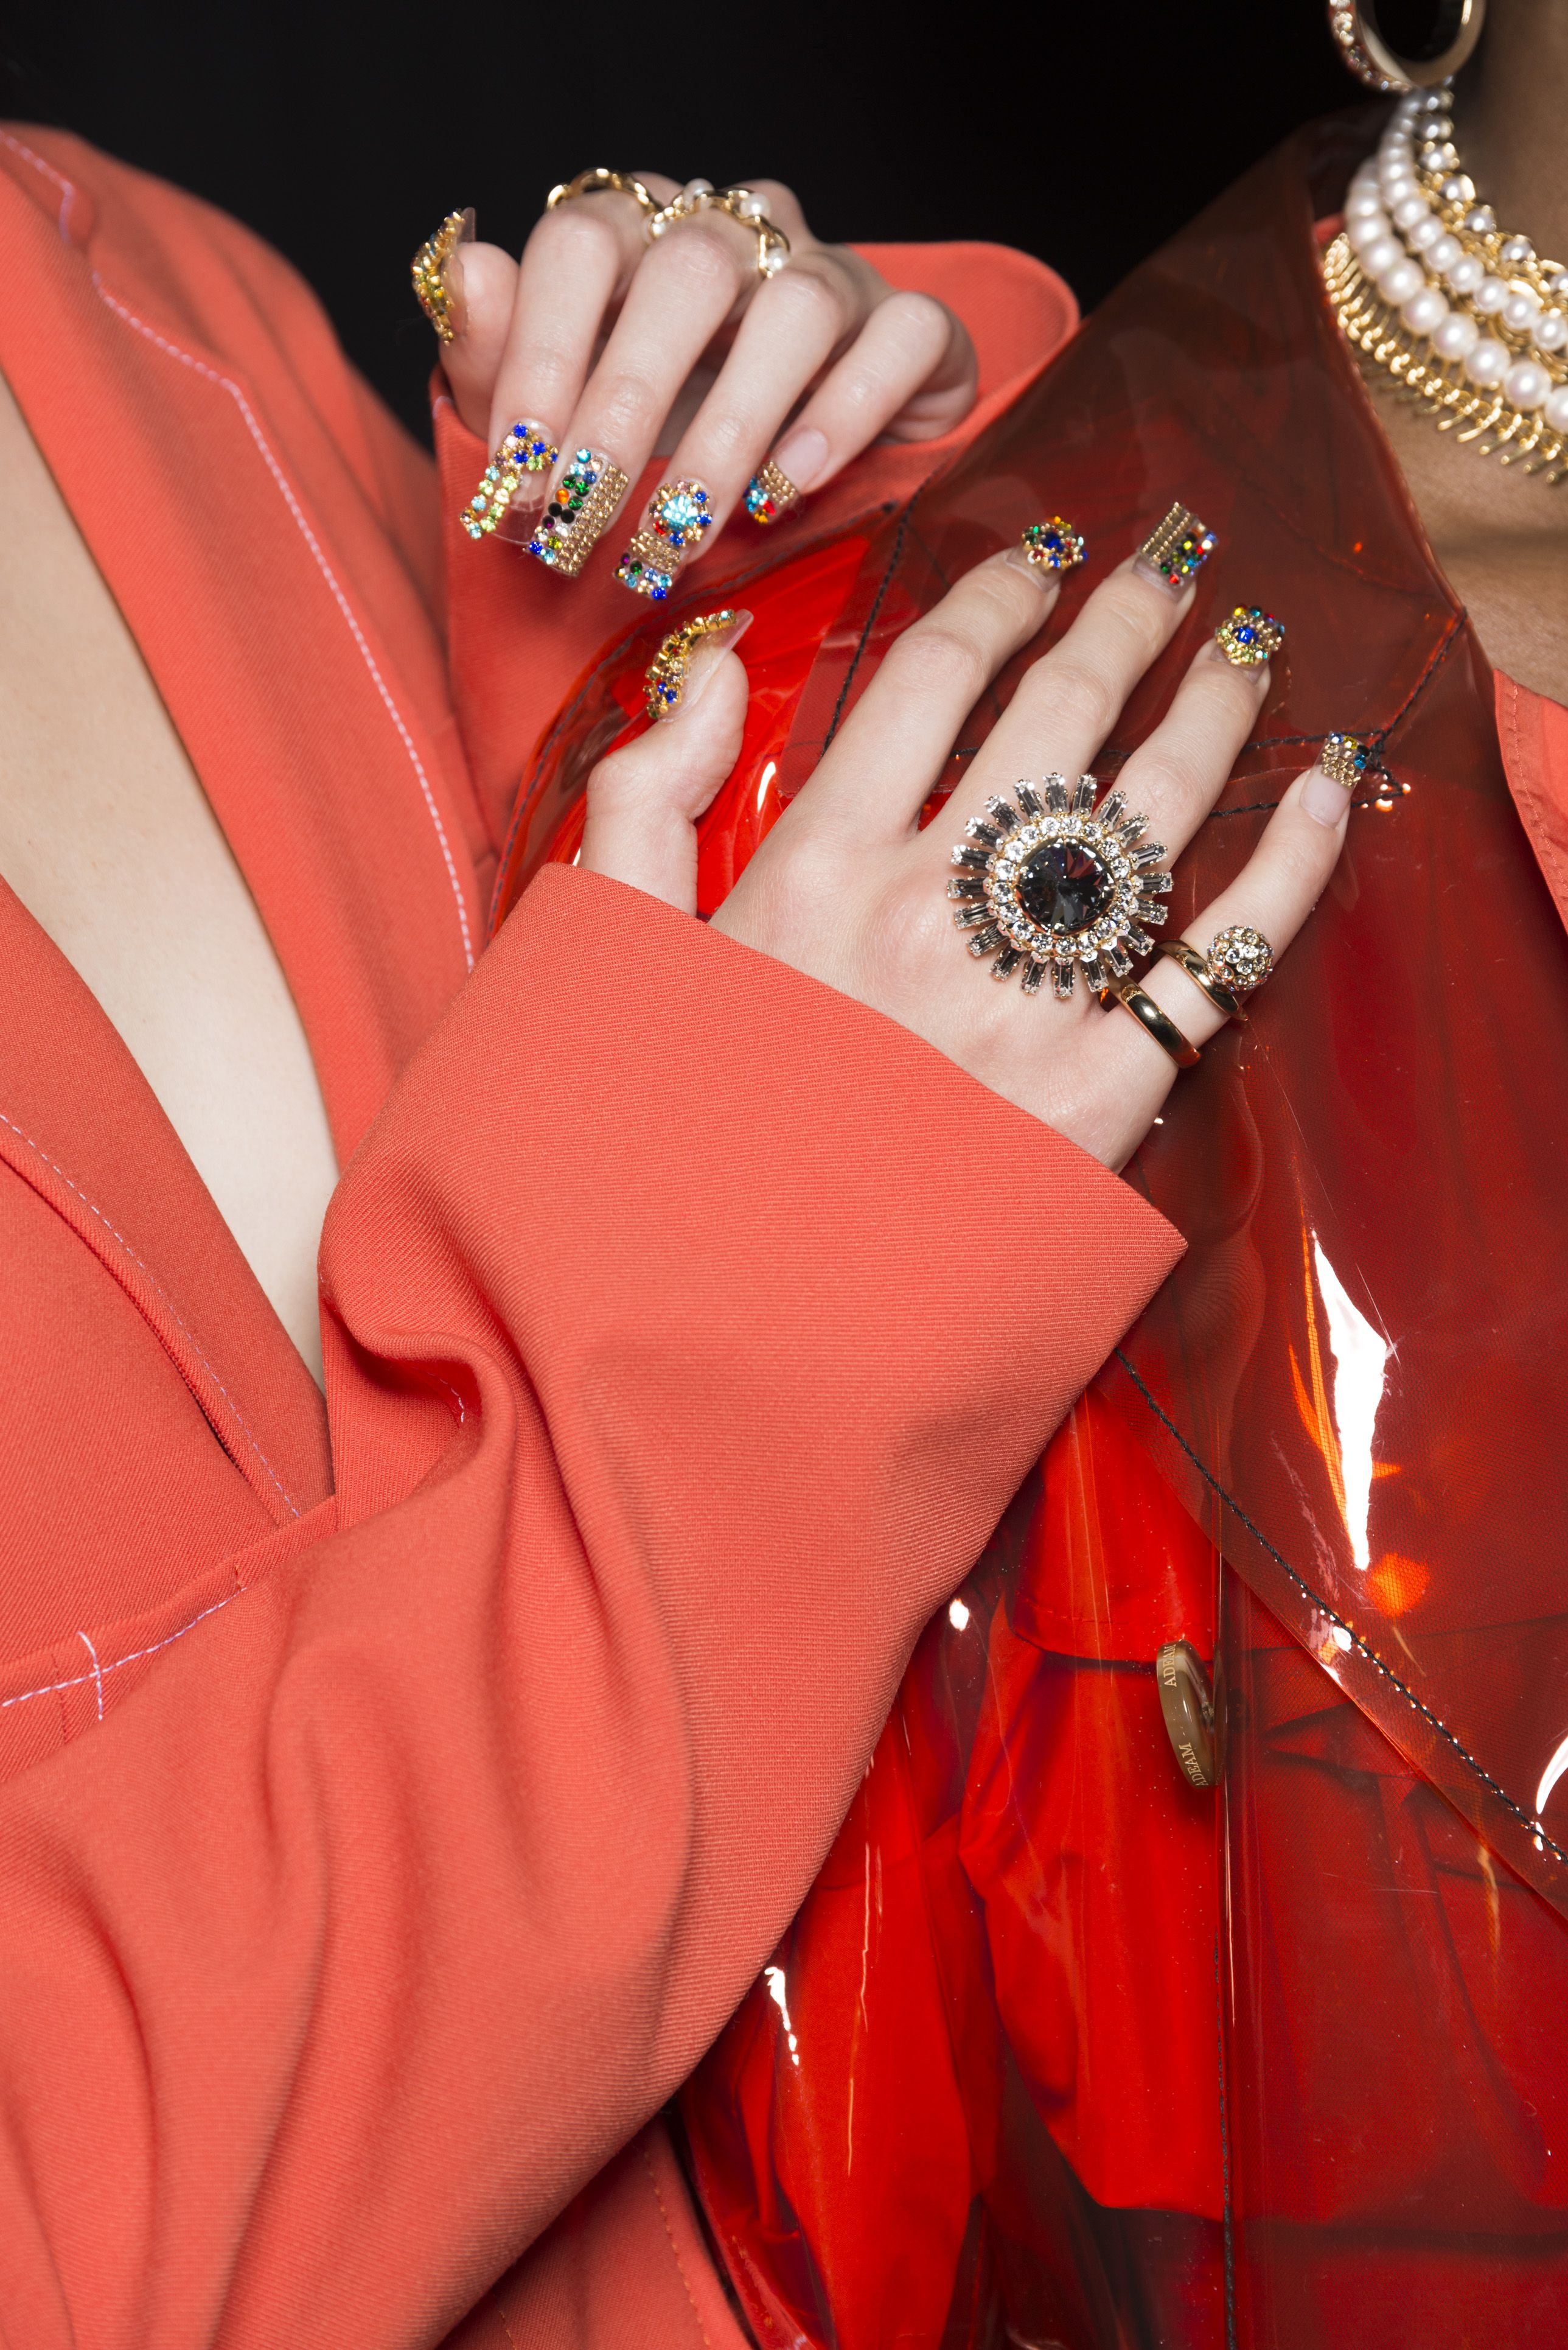 spring 2019 nail trends and manicure